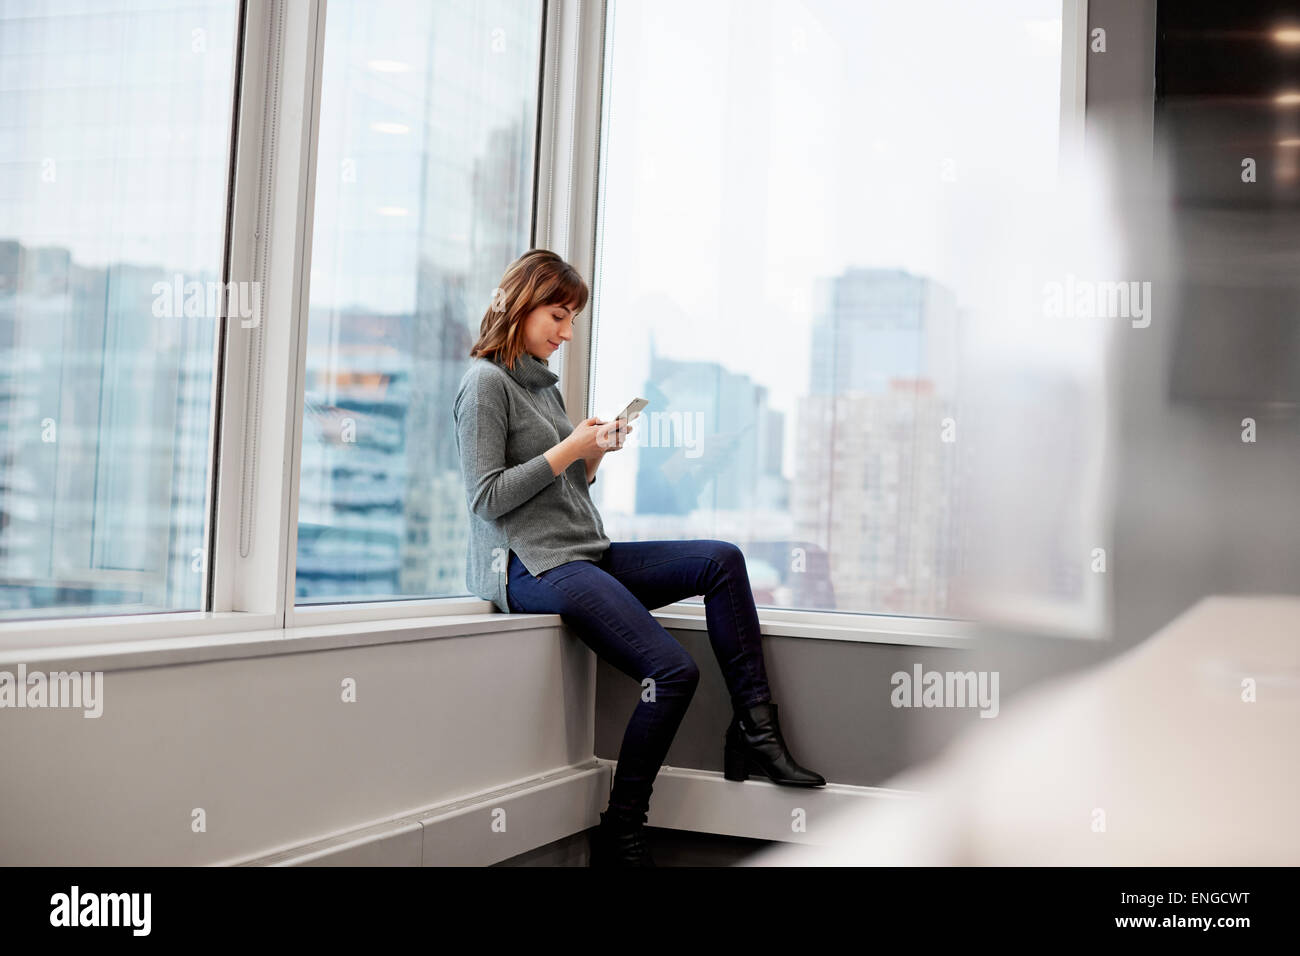 A woman sitting along, using a smart phone. - Stock Image